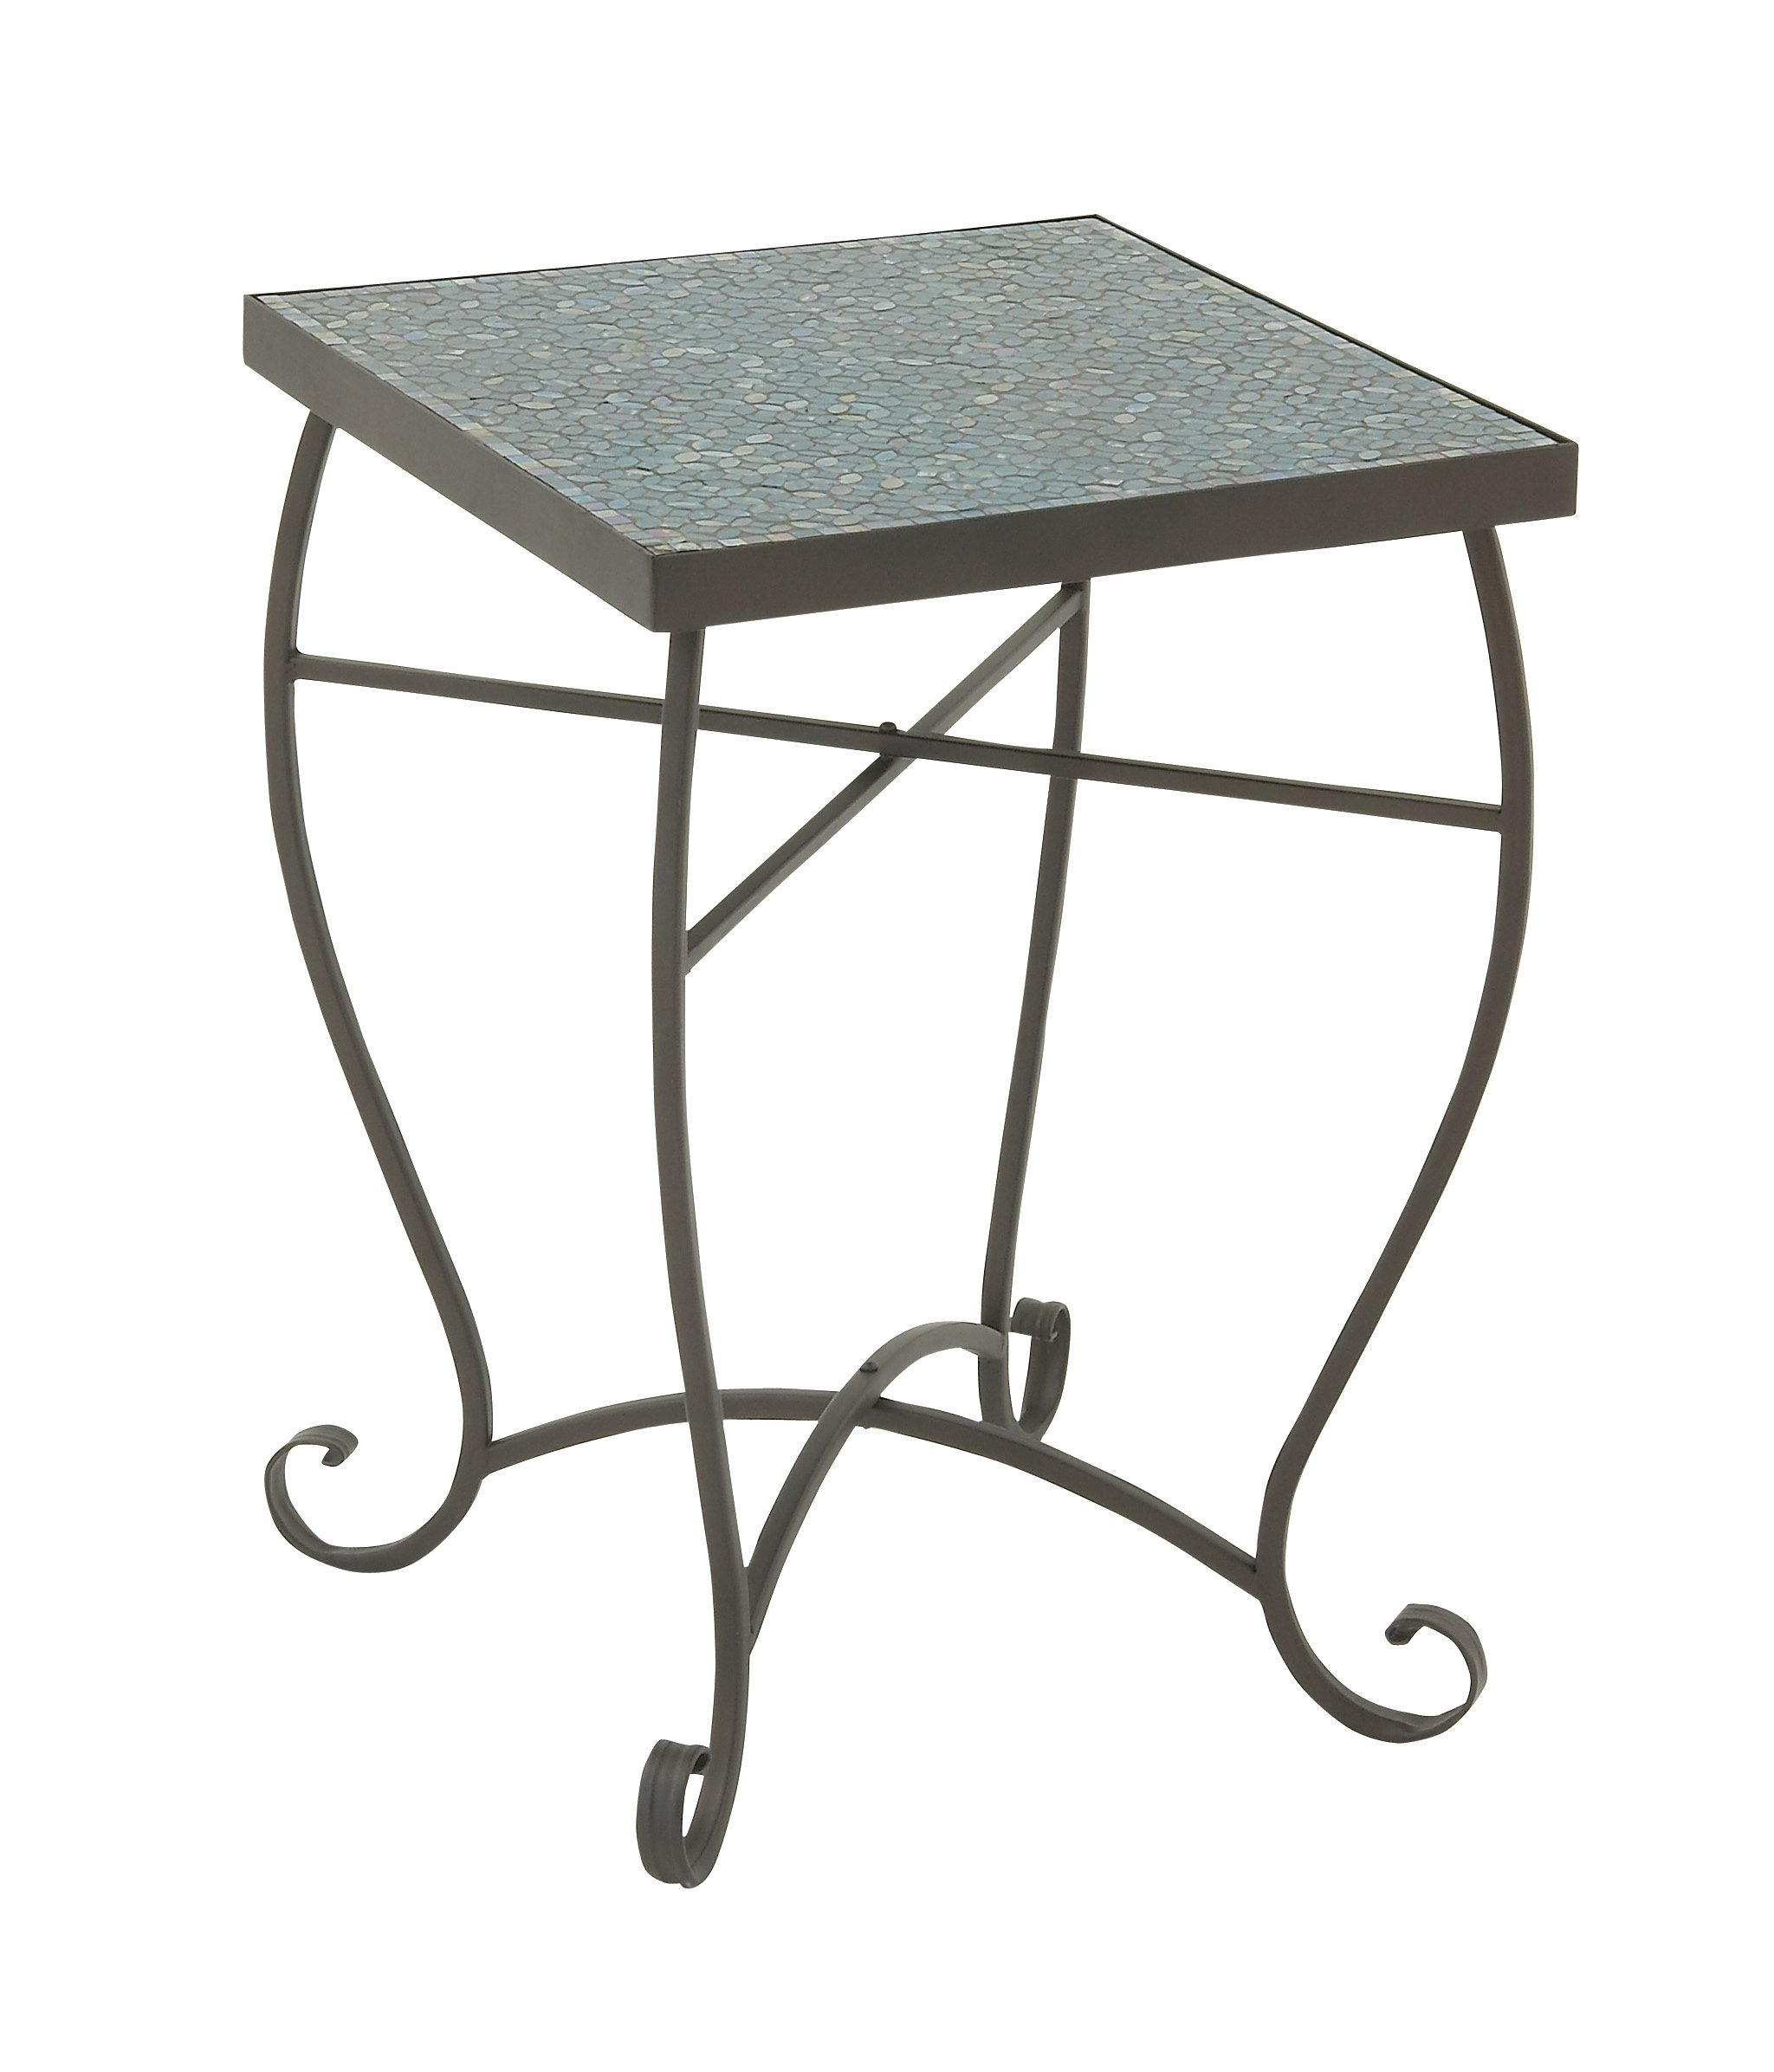 Deco 79 23987 Metal Mosaic Accent Table, 16'' x 23'', Turquoise